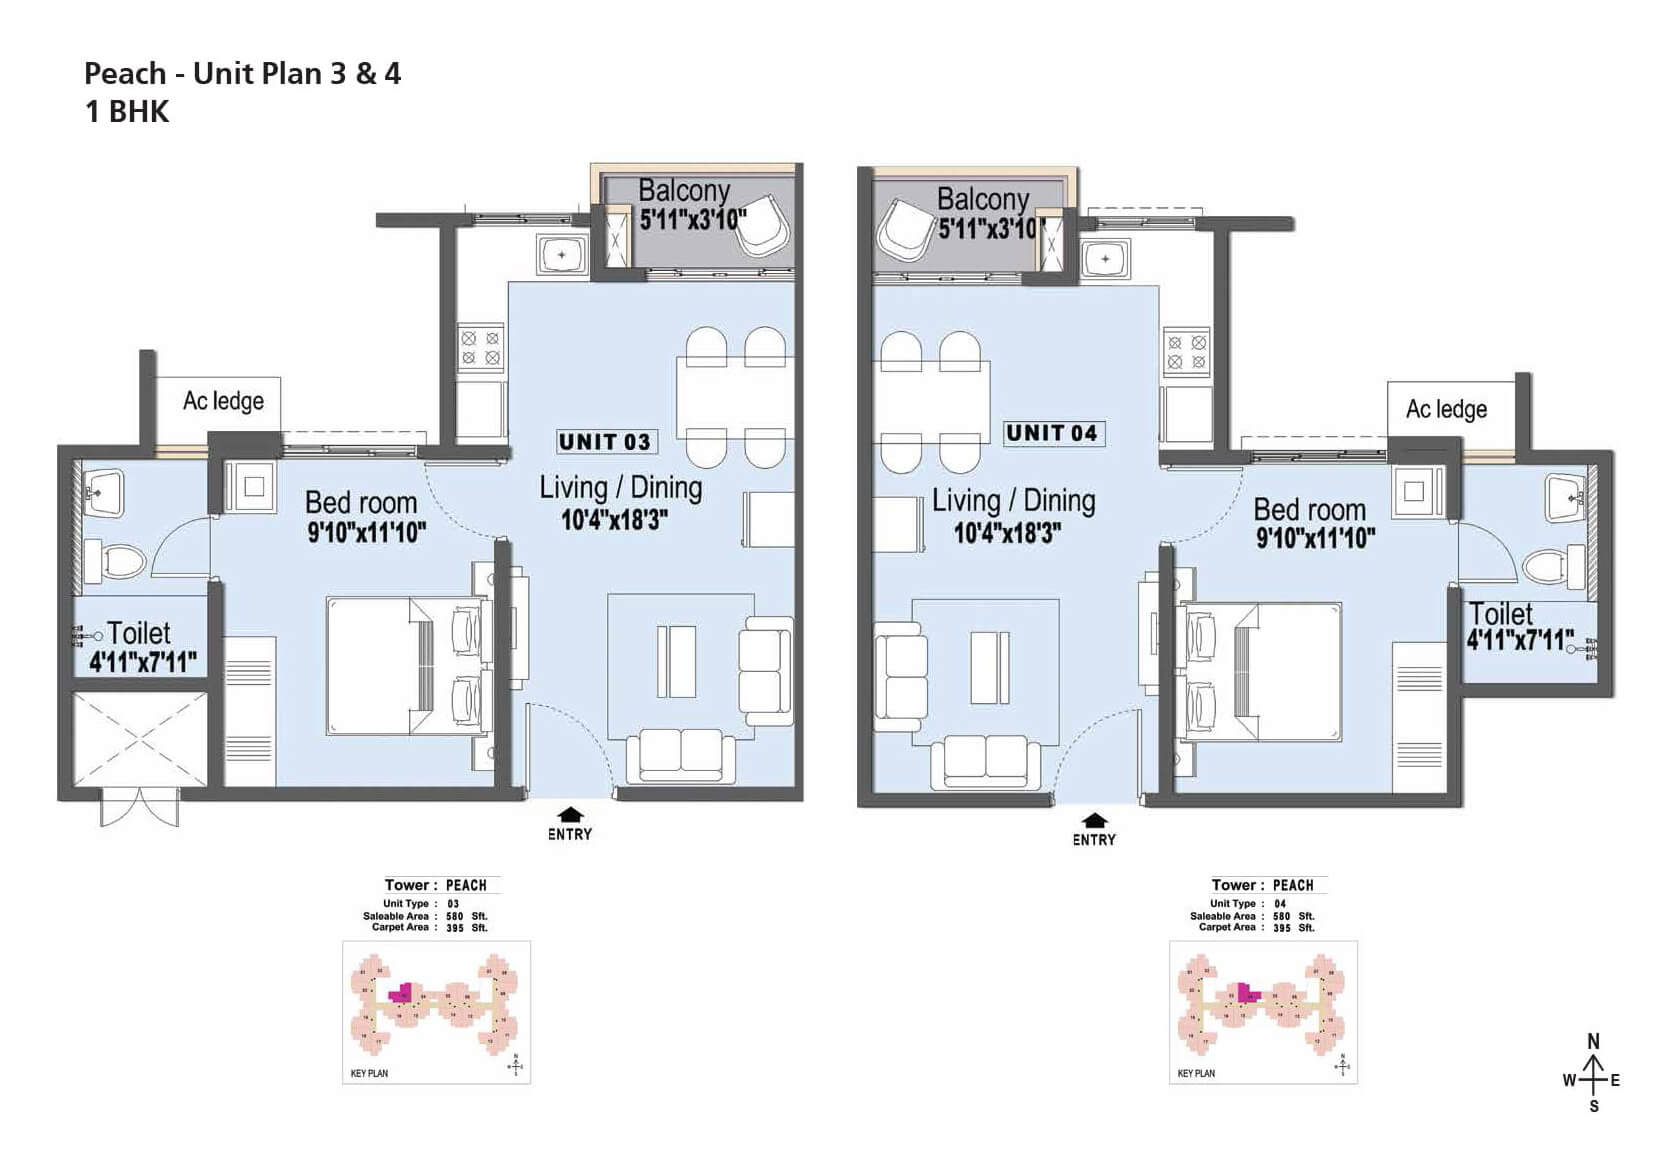 Edenpark Peach Plan 2 & 4 - 1 BHK